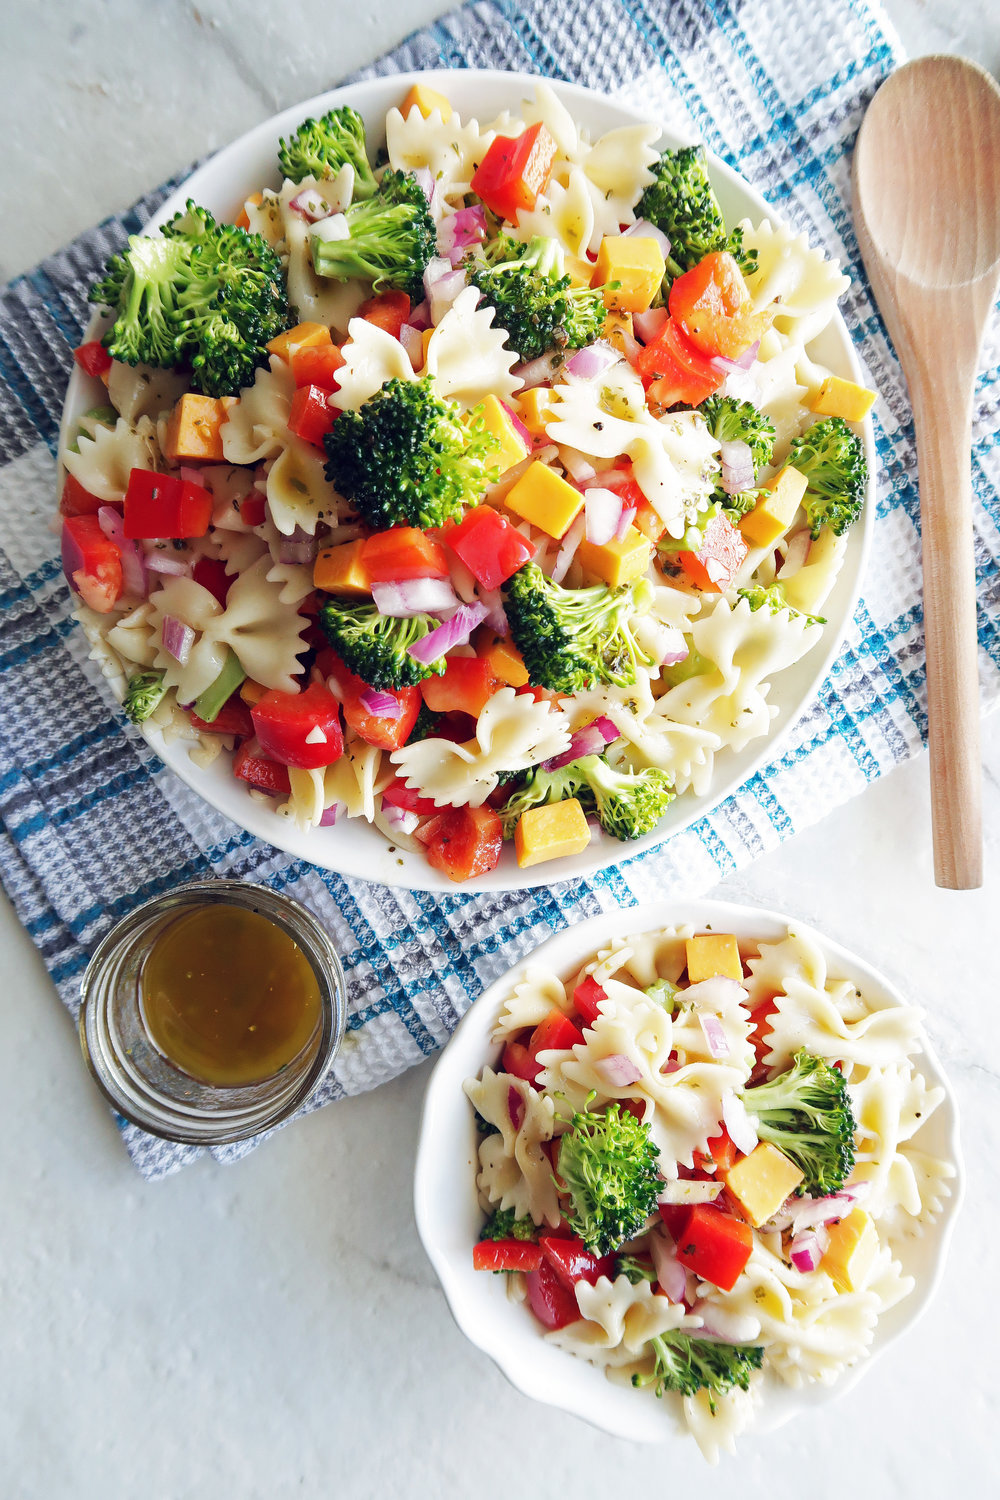 Broccoli Cheddar Pasta Salad with Tangy Italian Vinaigrette in a large pasta bowl, a small bowl of pasta salad, dressing in a small jar, and wooden spoon to the side.